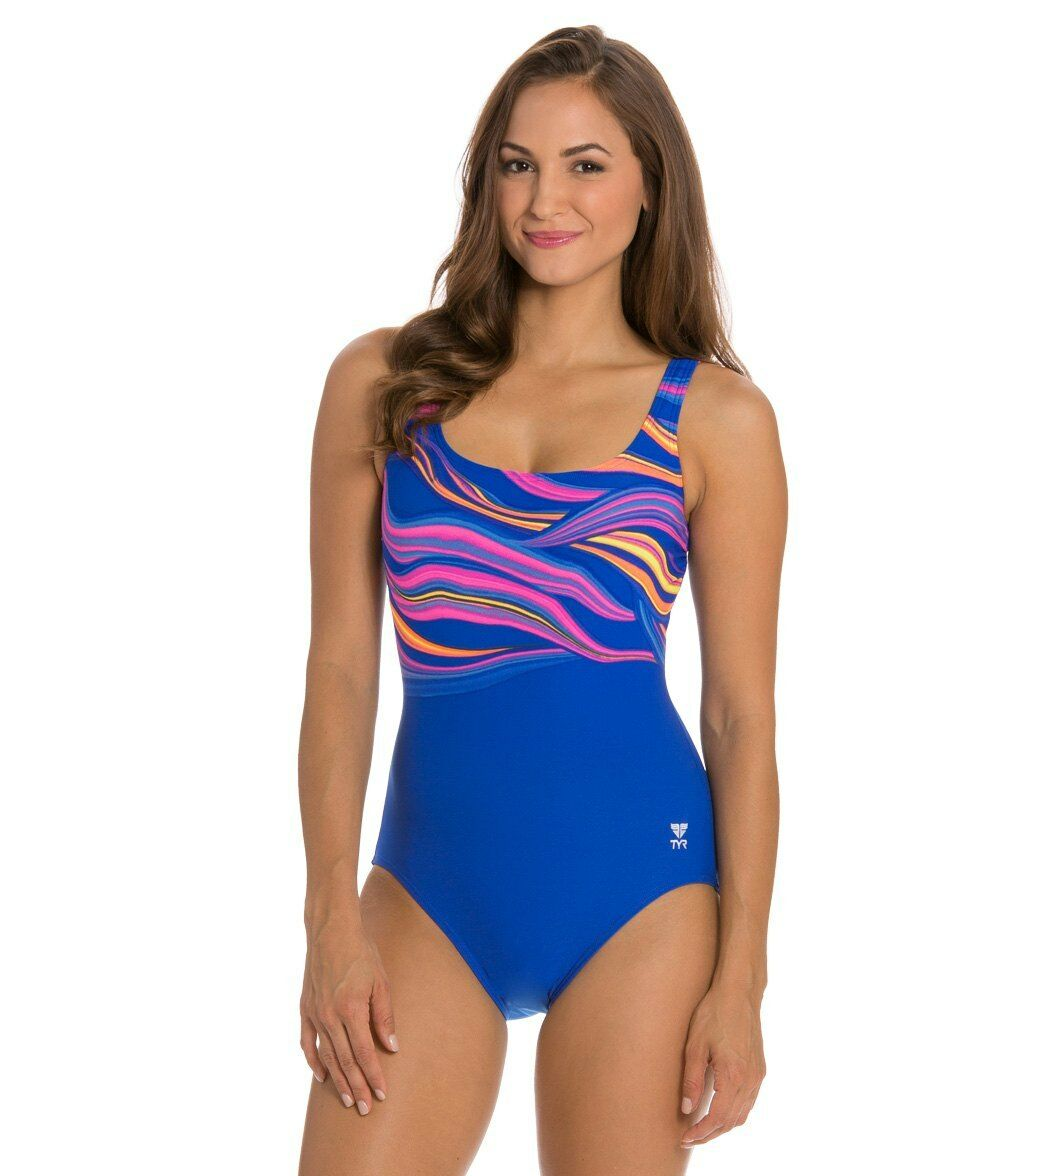 Womens TYR Fantasia Controlfit Swimsuit Size 18 NWT bluee Durafast Fitness